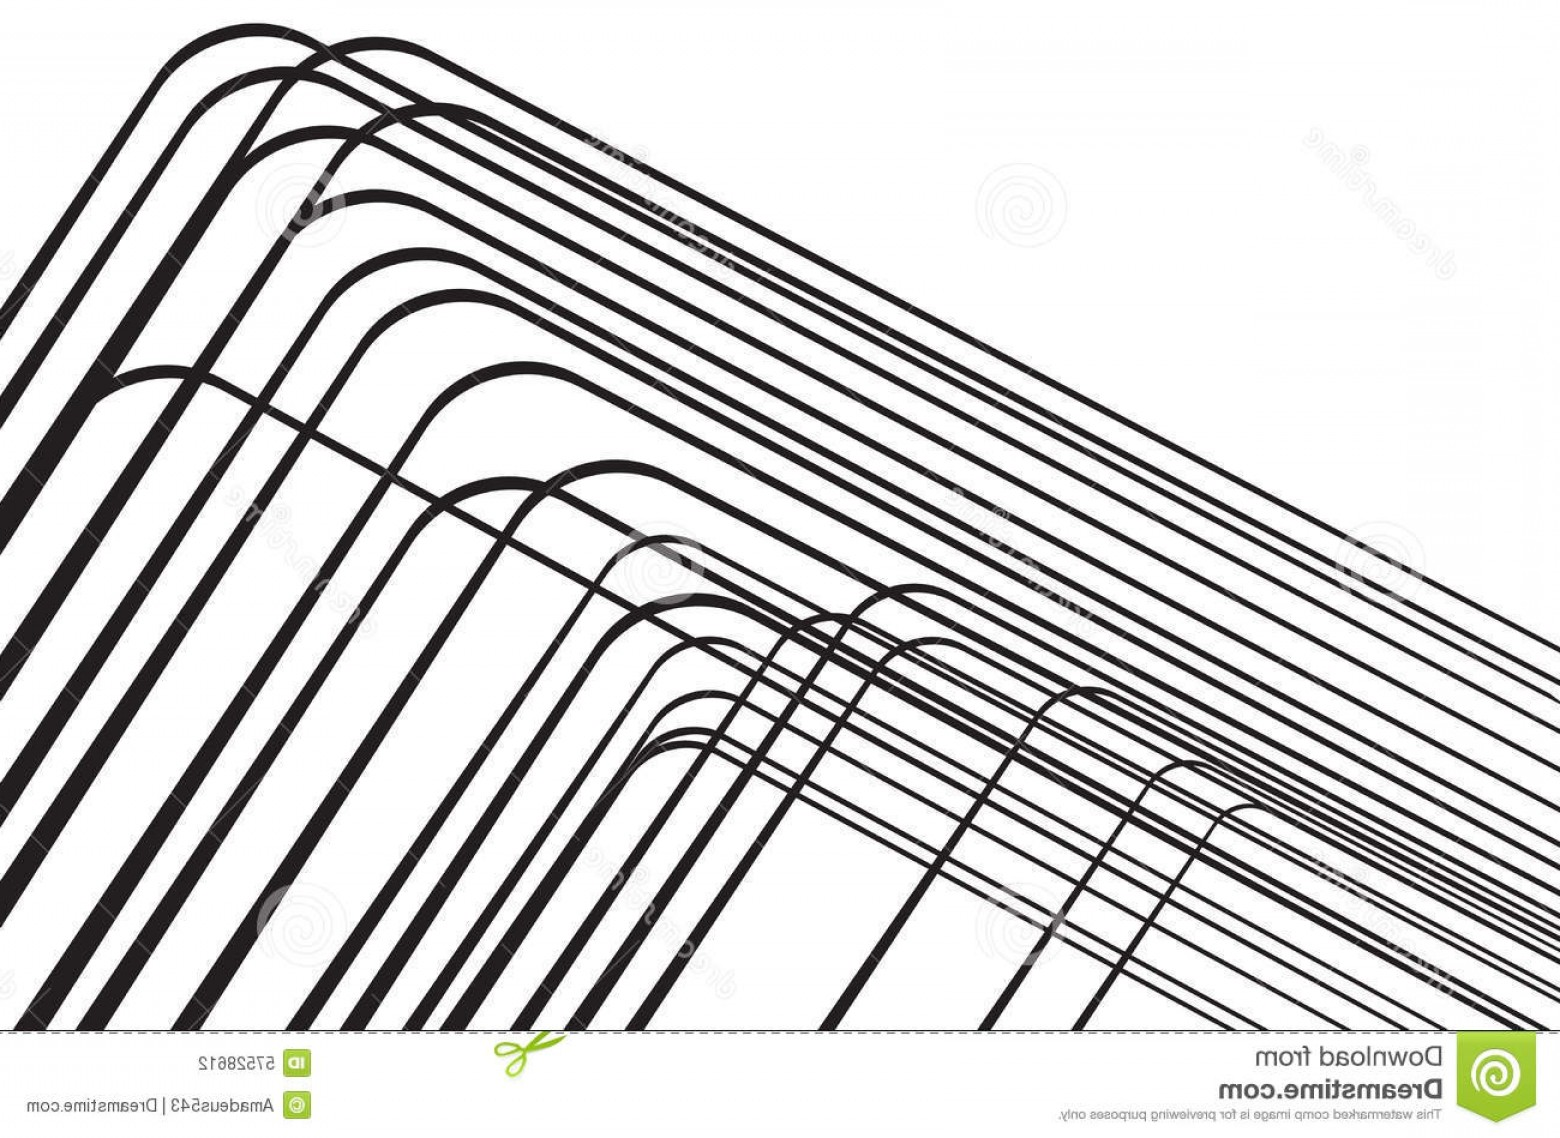 Black Abstract Lines Vector: Stock Illustration Abstract Black Lines Background Design Elements Image